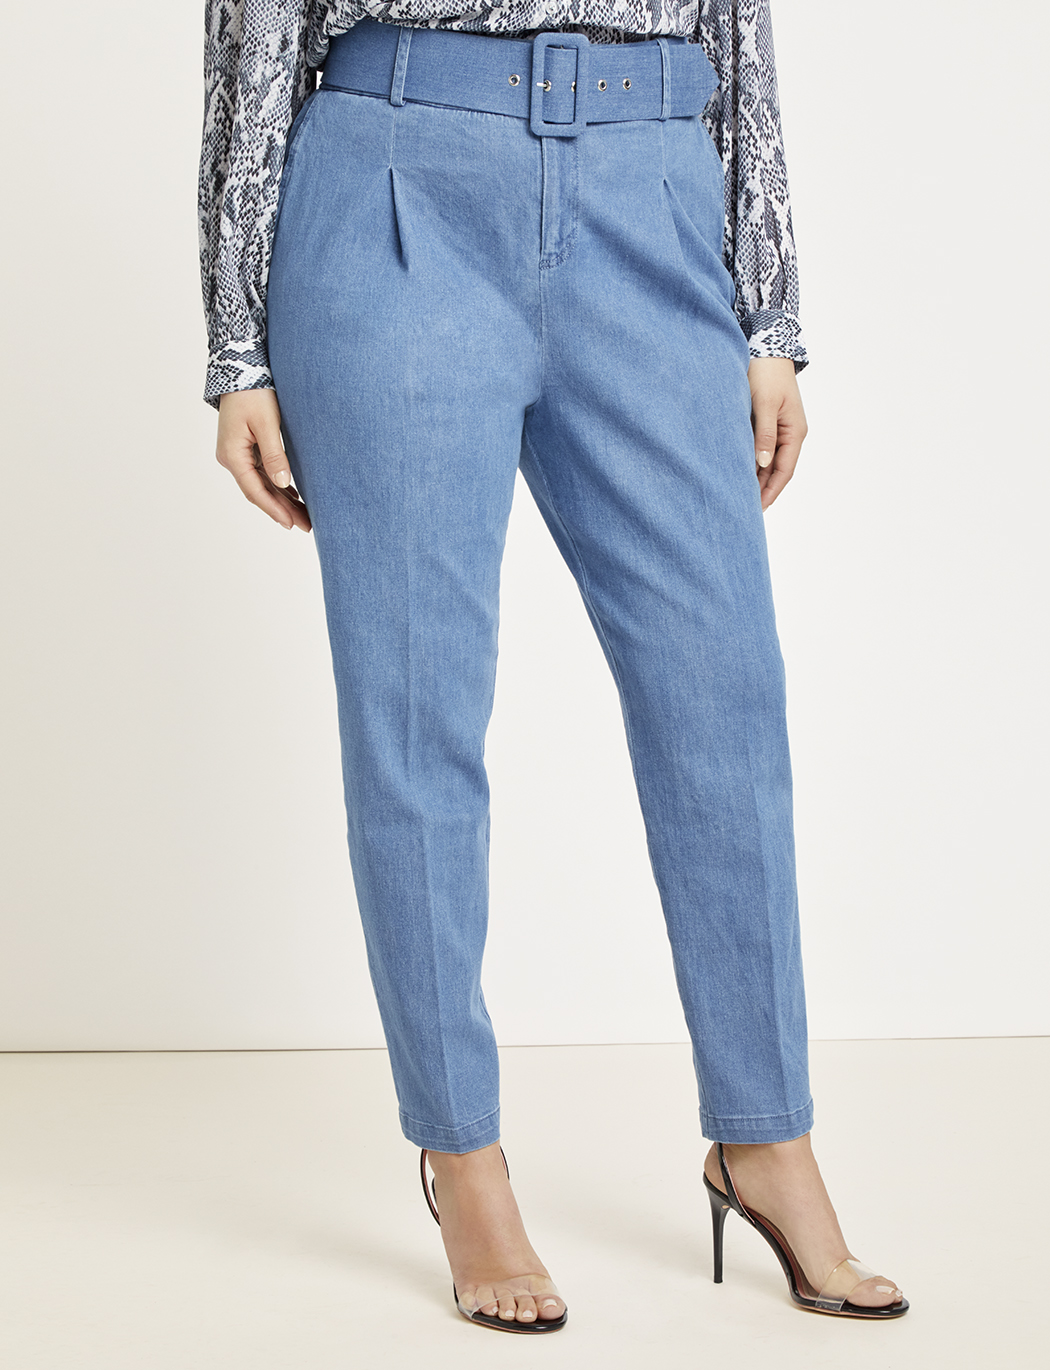 Belted Pleat Front High Waist Skinny Denim Trouser